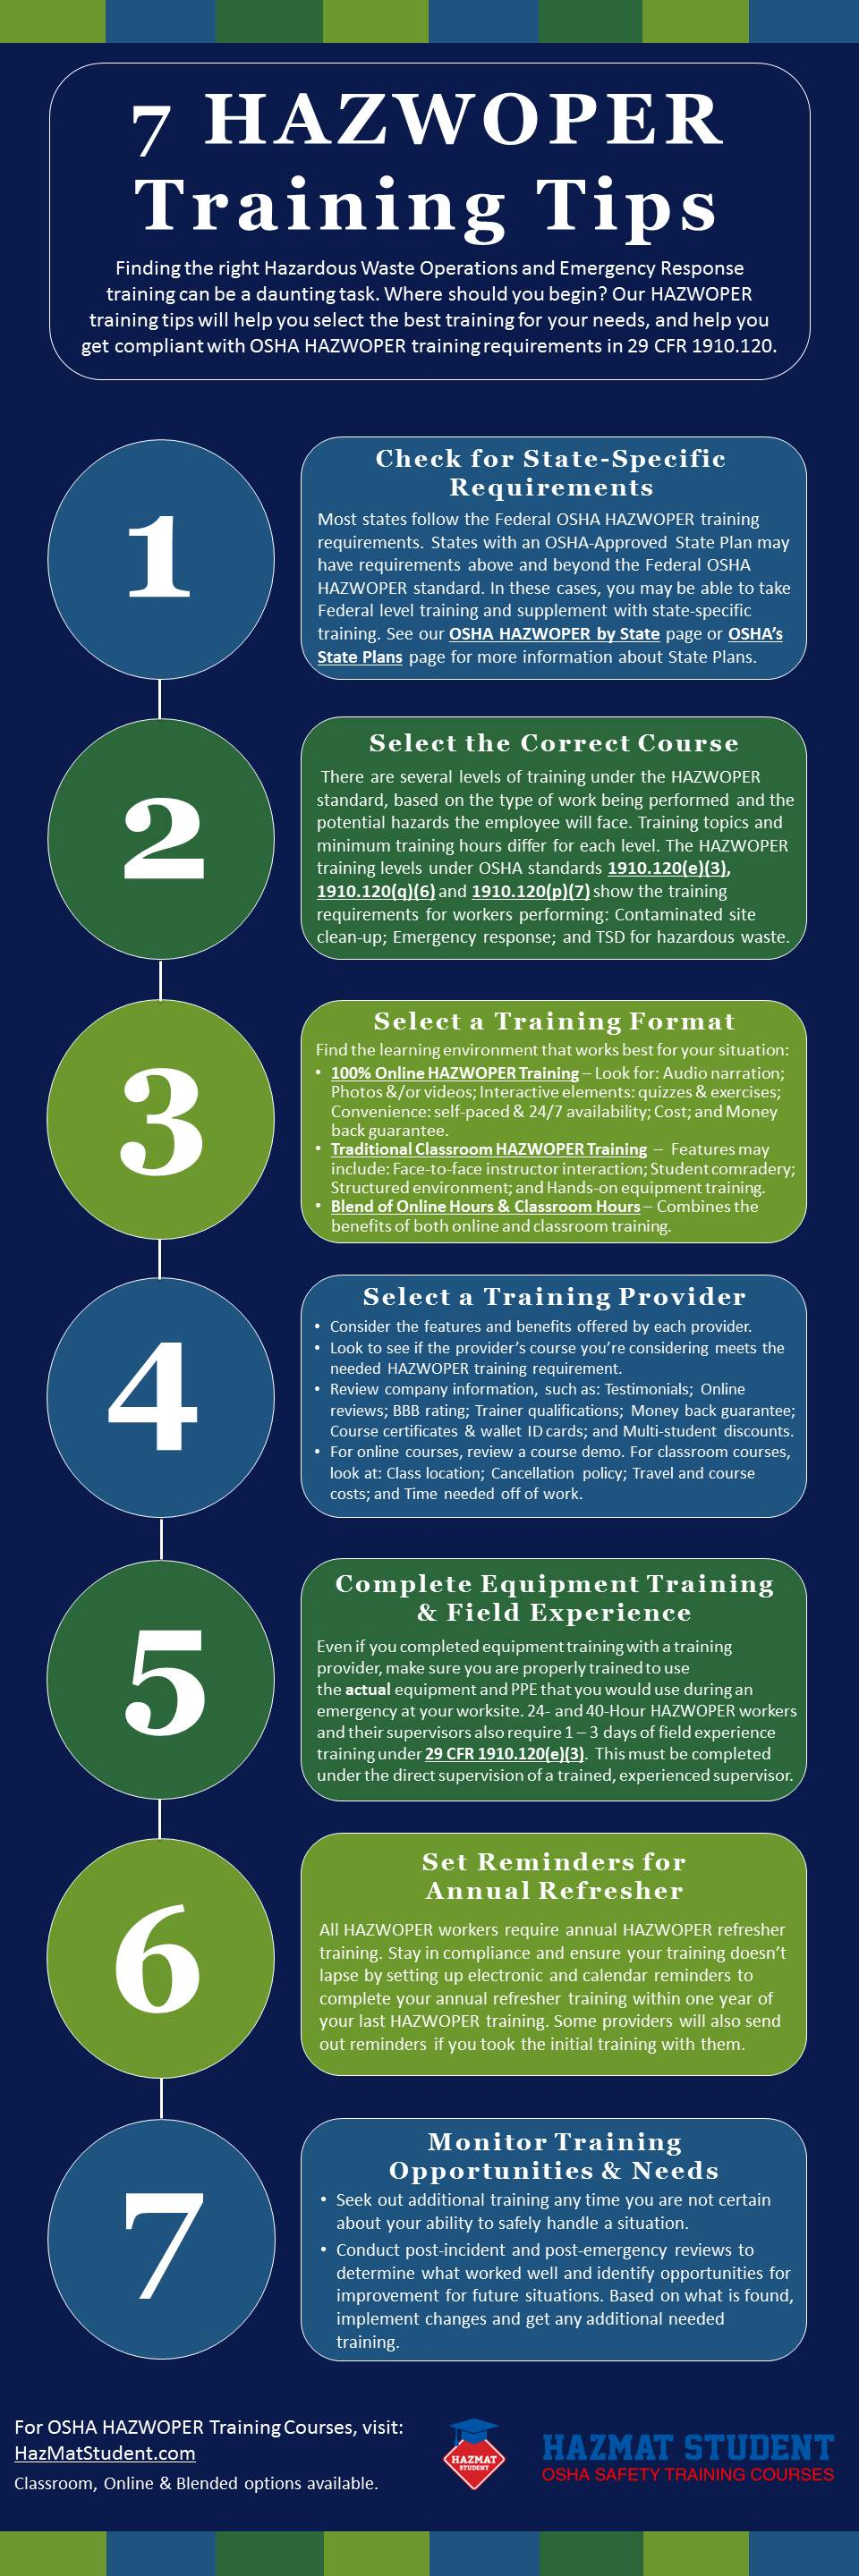 7 hazwoper training tips infographic